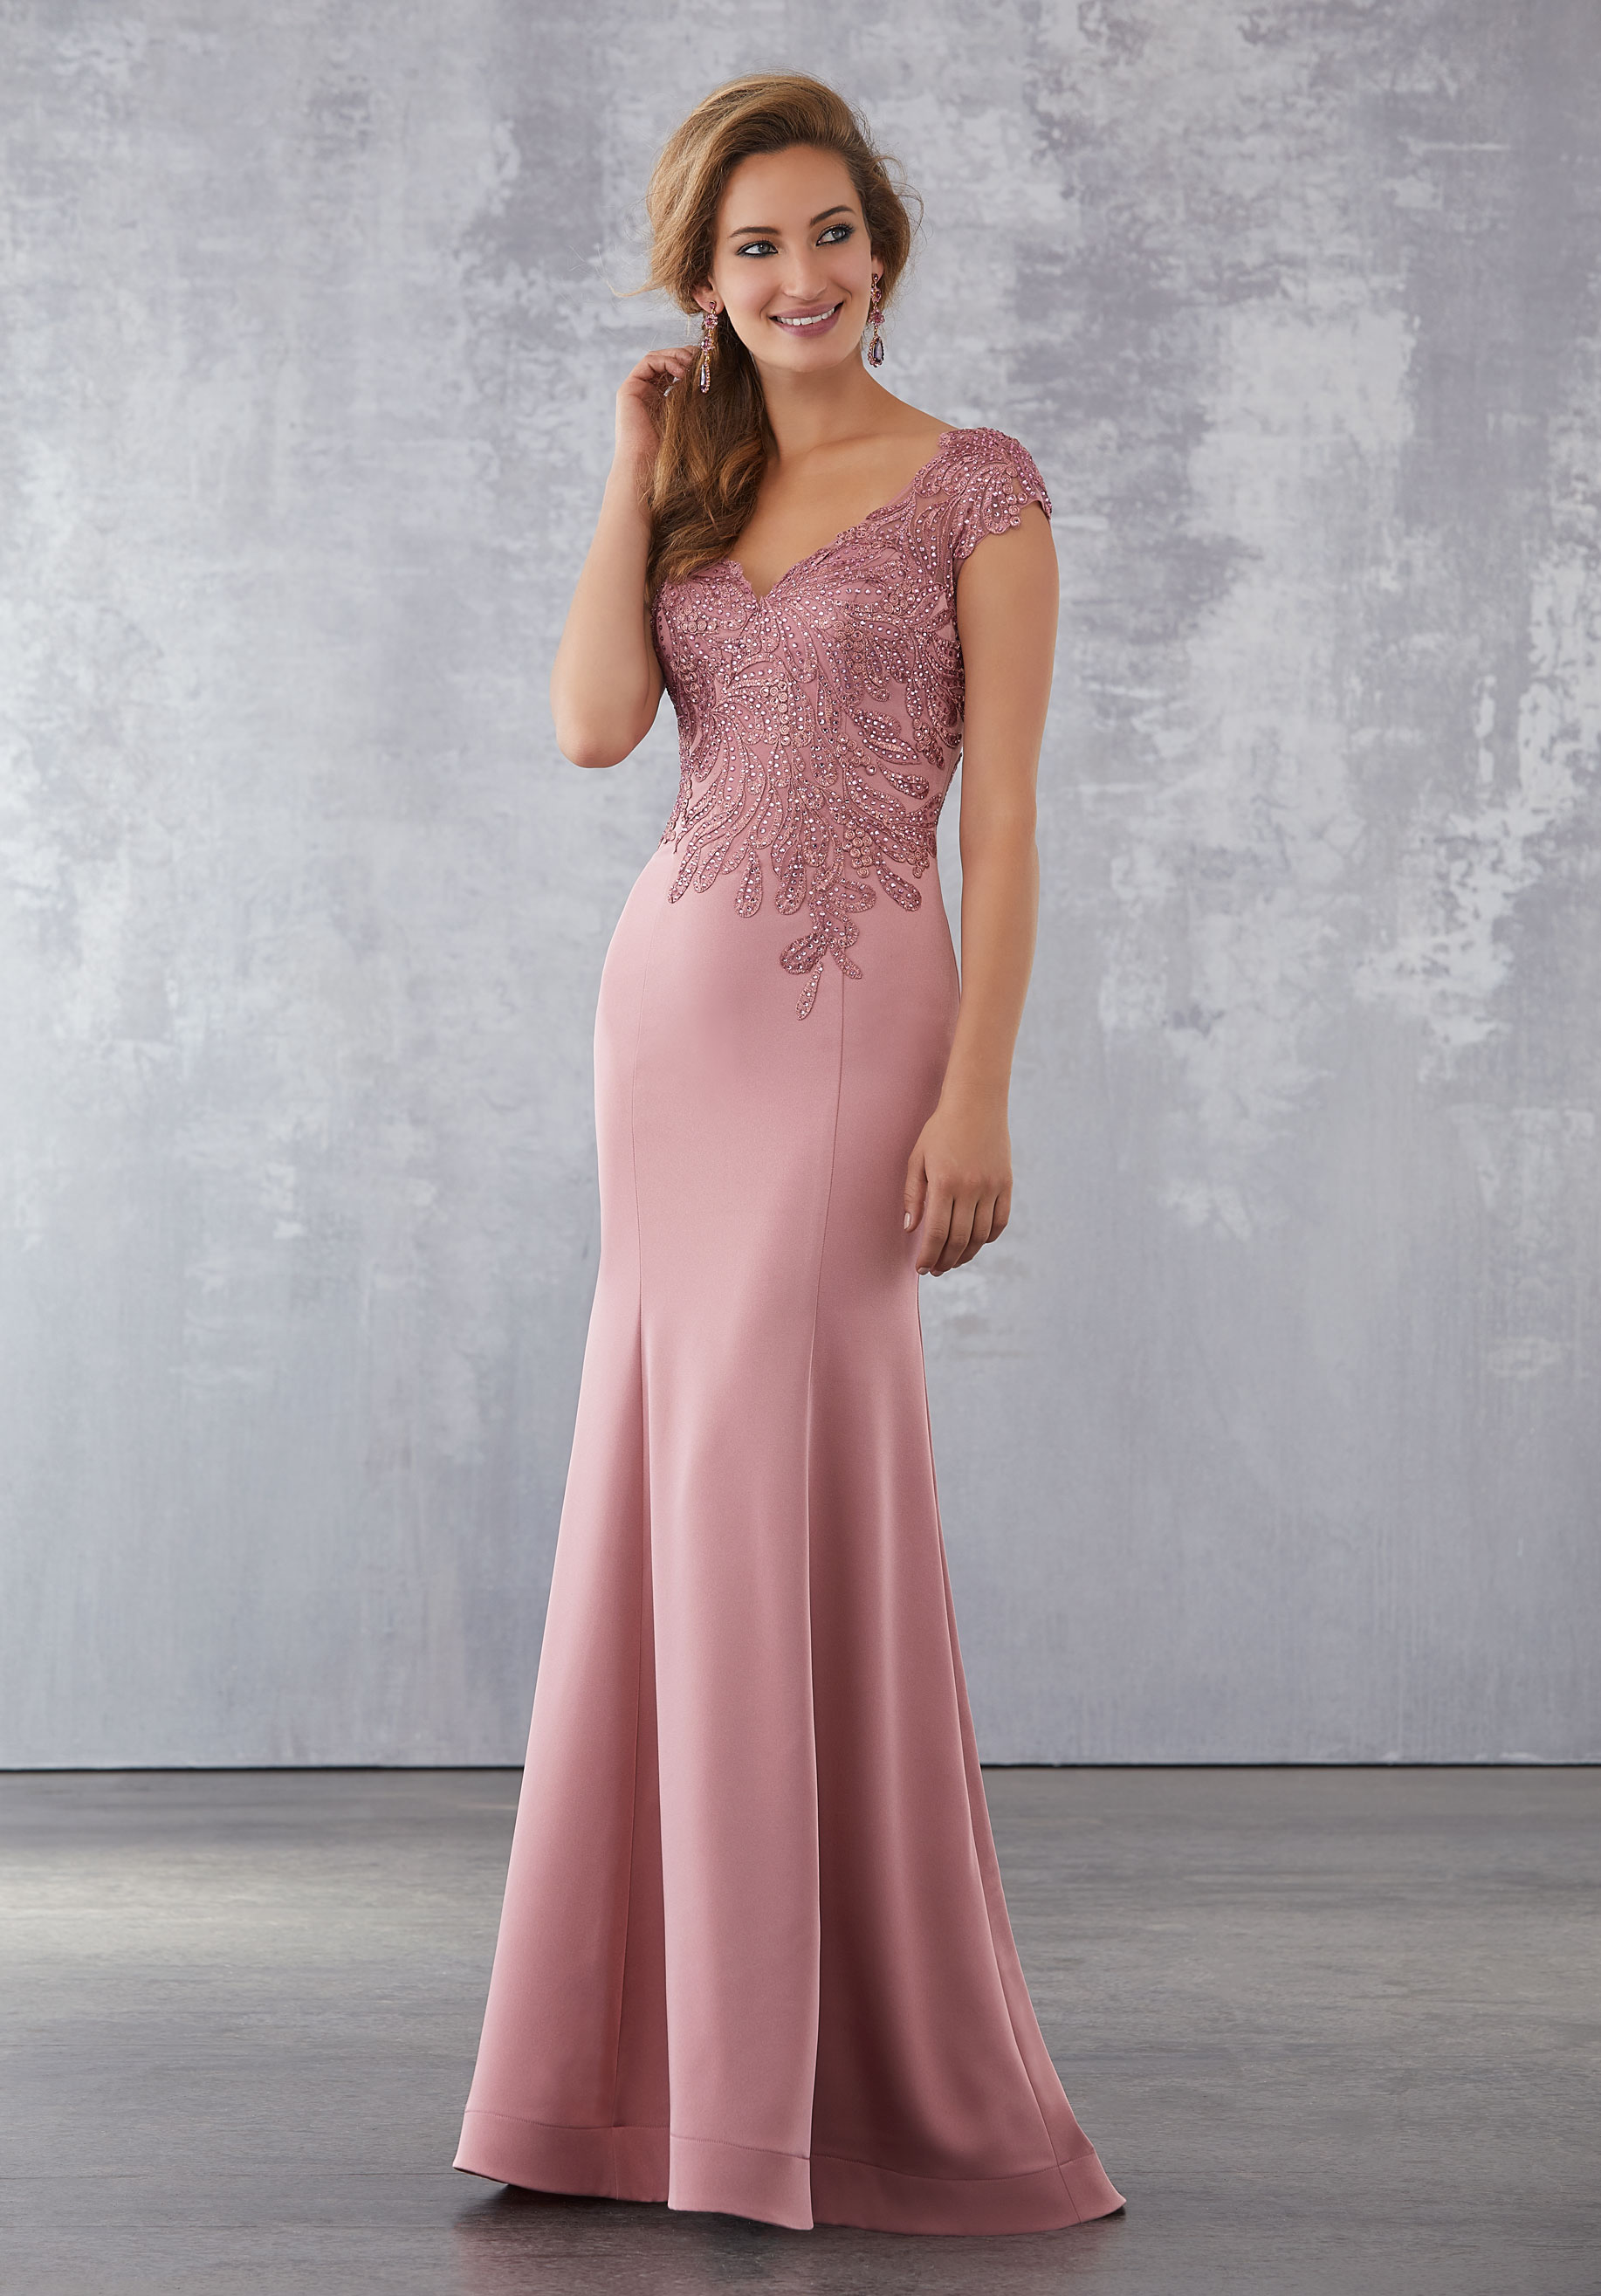 Special Occasion Dresses crepe special occasion dress with beading and embroidered appliqués SJKFIMG